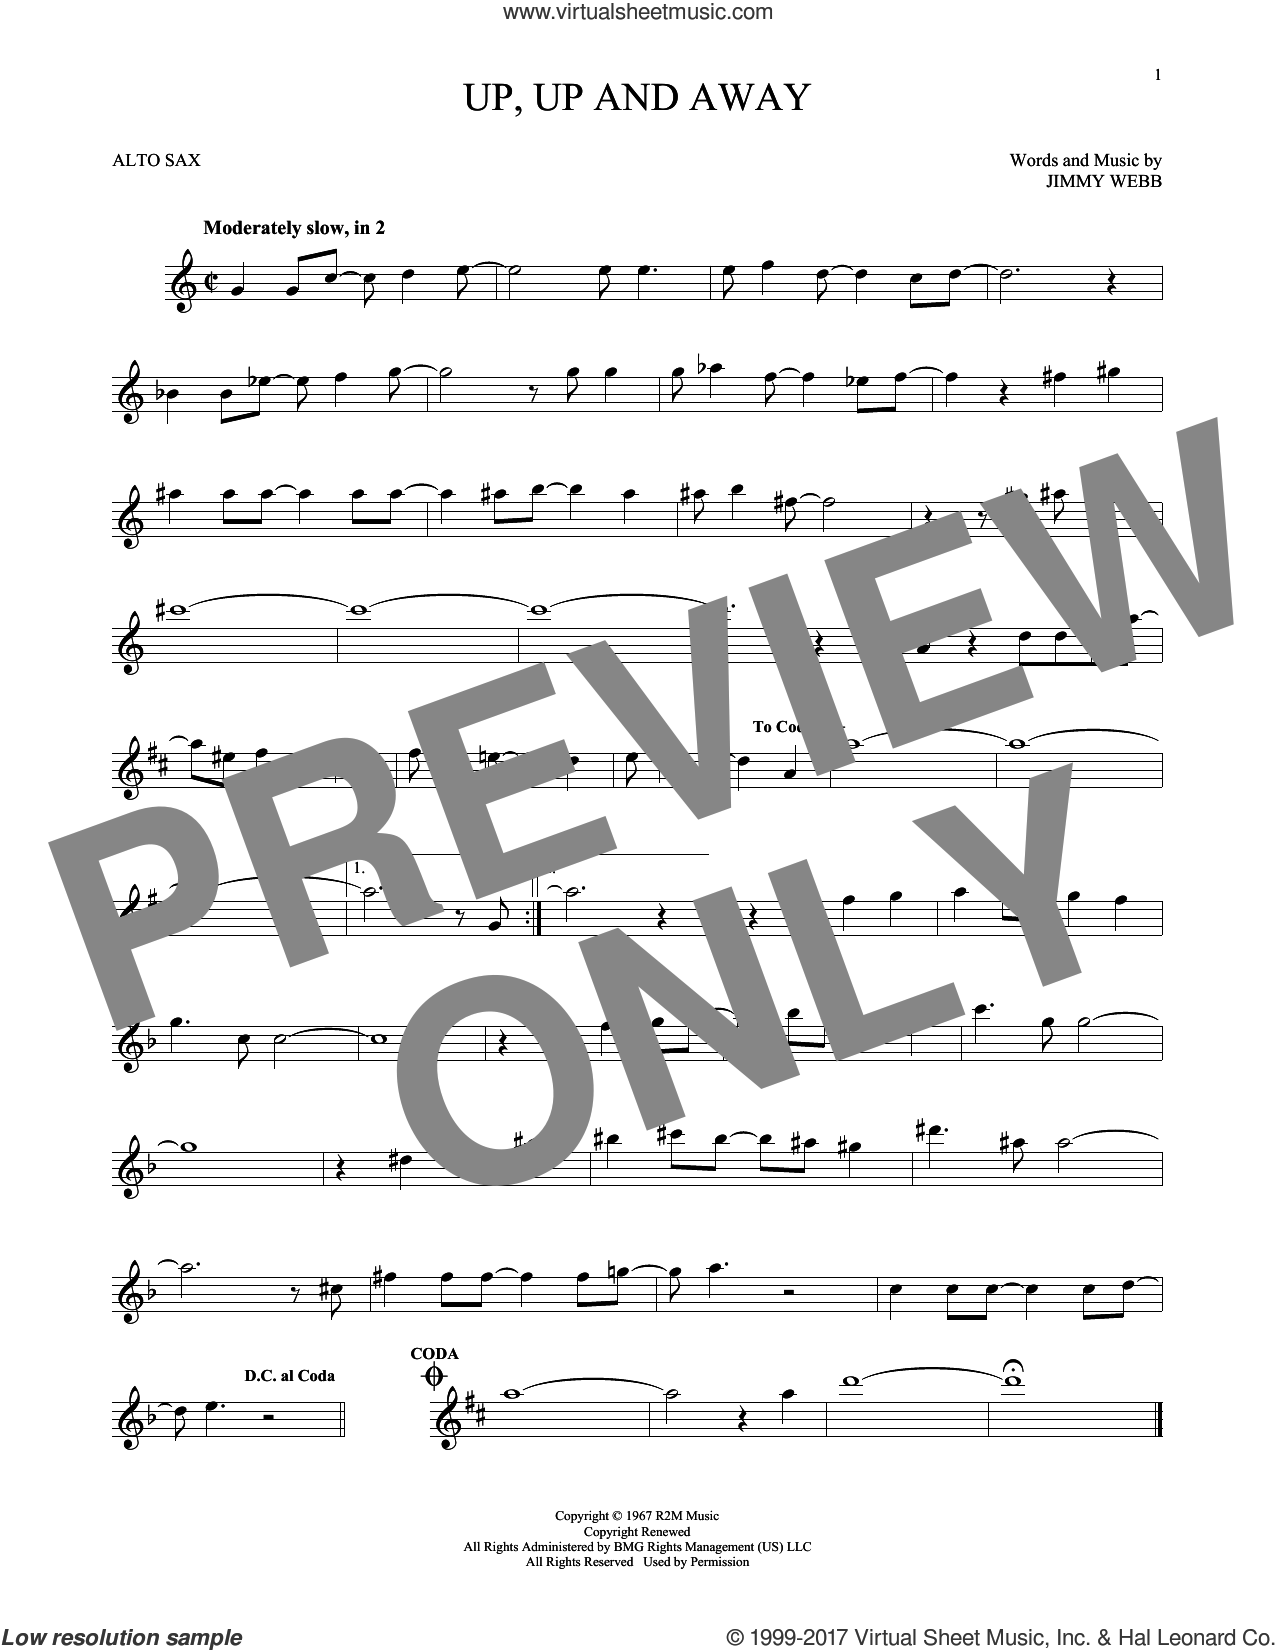 Up, Up And Away sheet music for alto saxophone solo ( Sax) by The Fifth Dimension and Jimmy Webb, intermediate alto saxophone ( Sax)